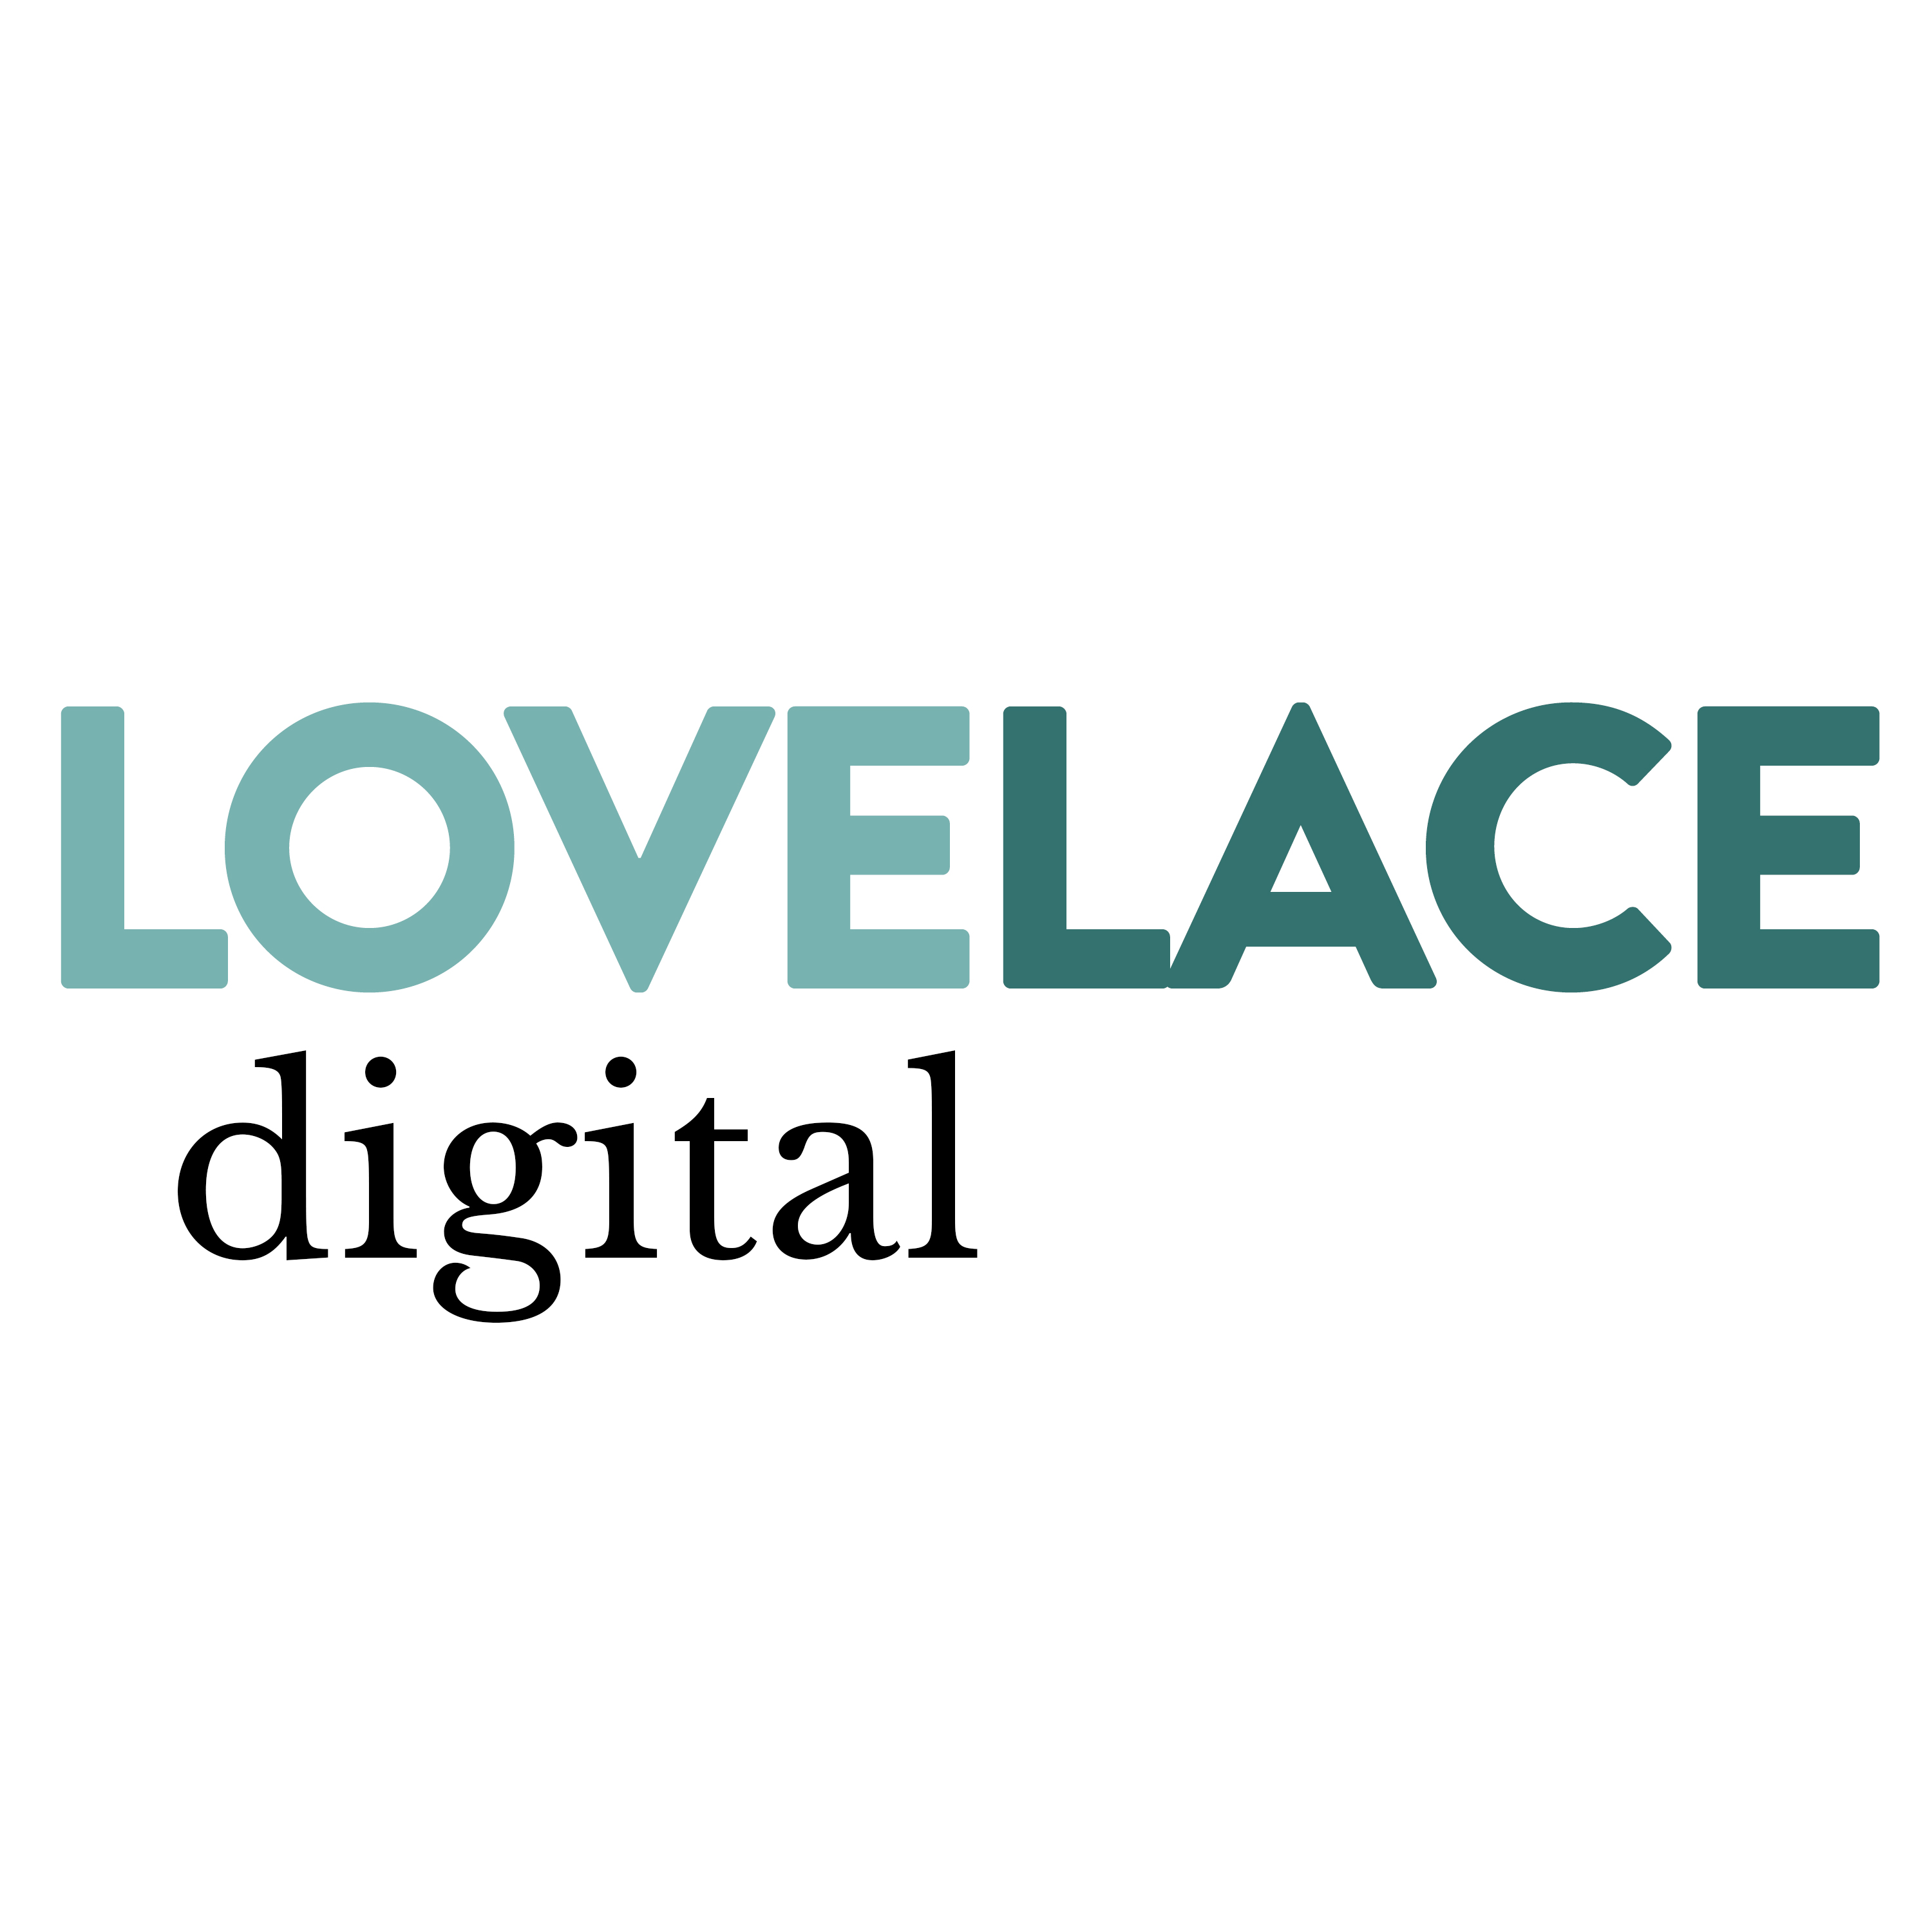 Lovelace Digital